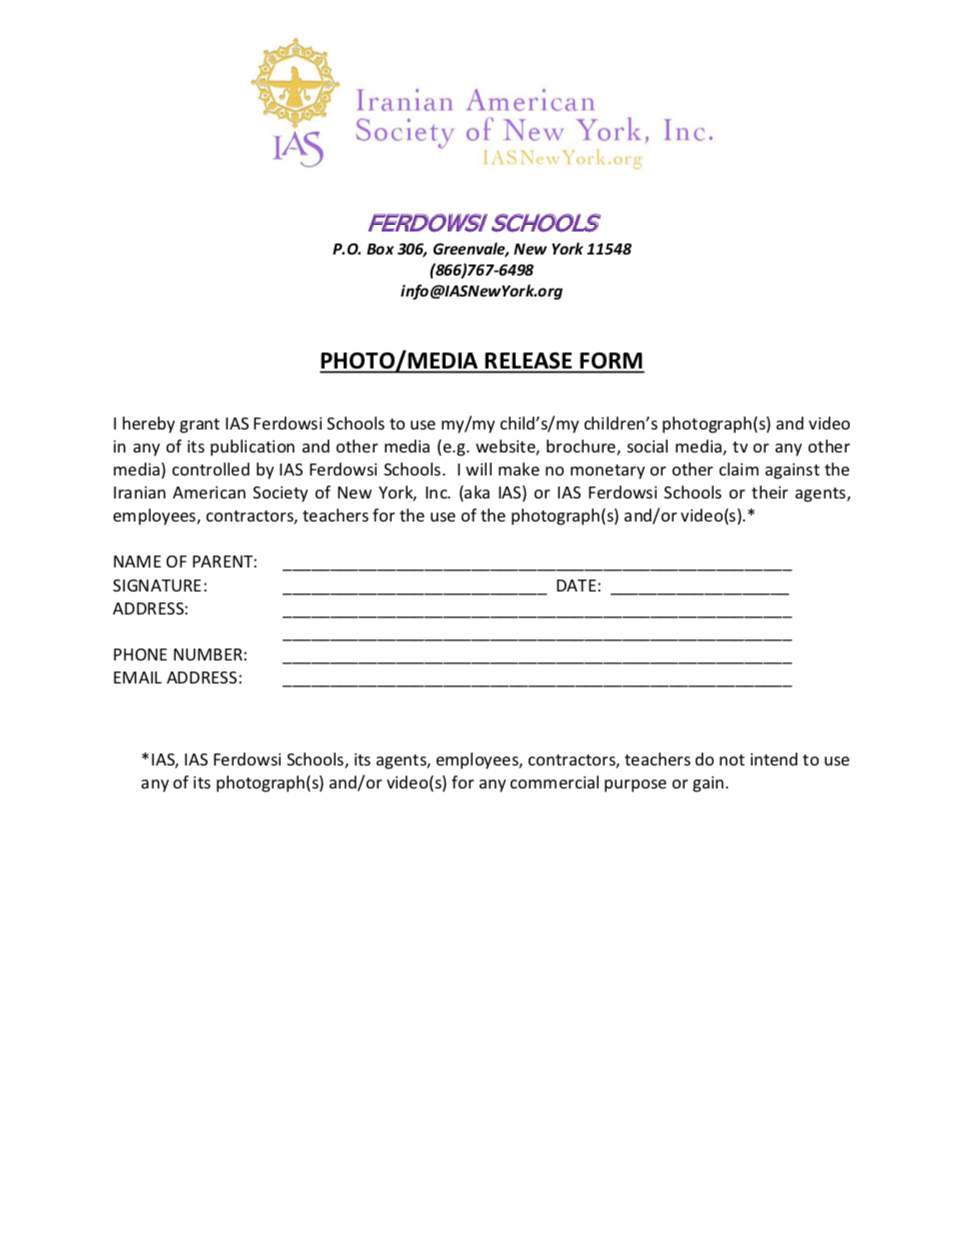 Photo/Media Release Form